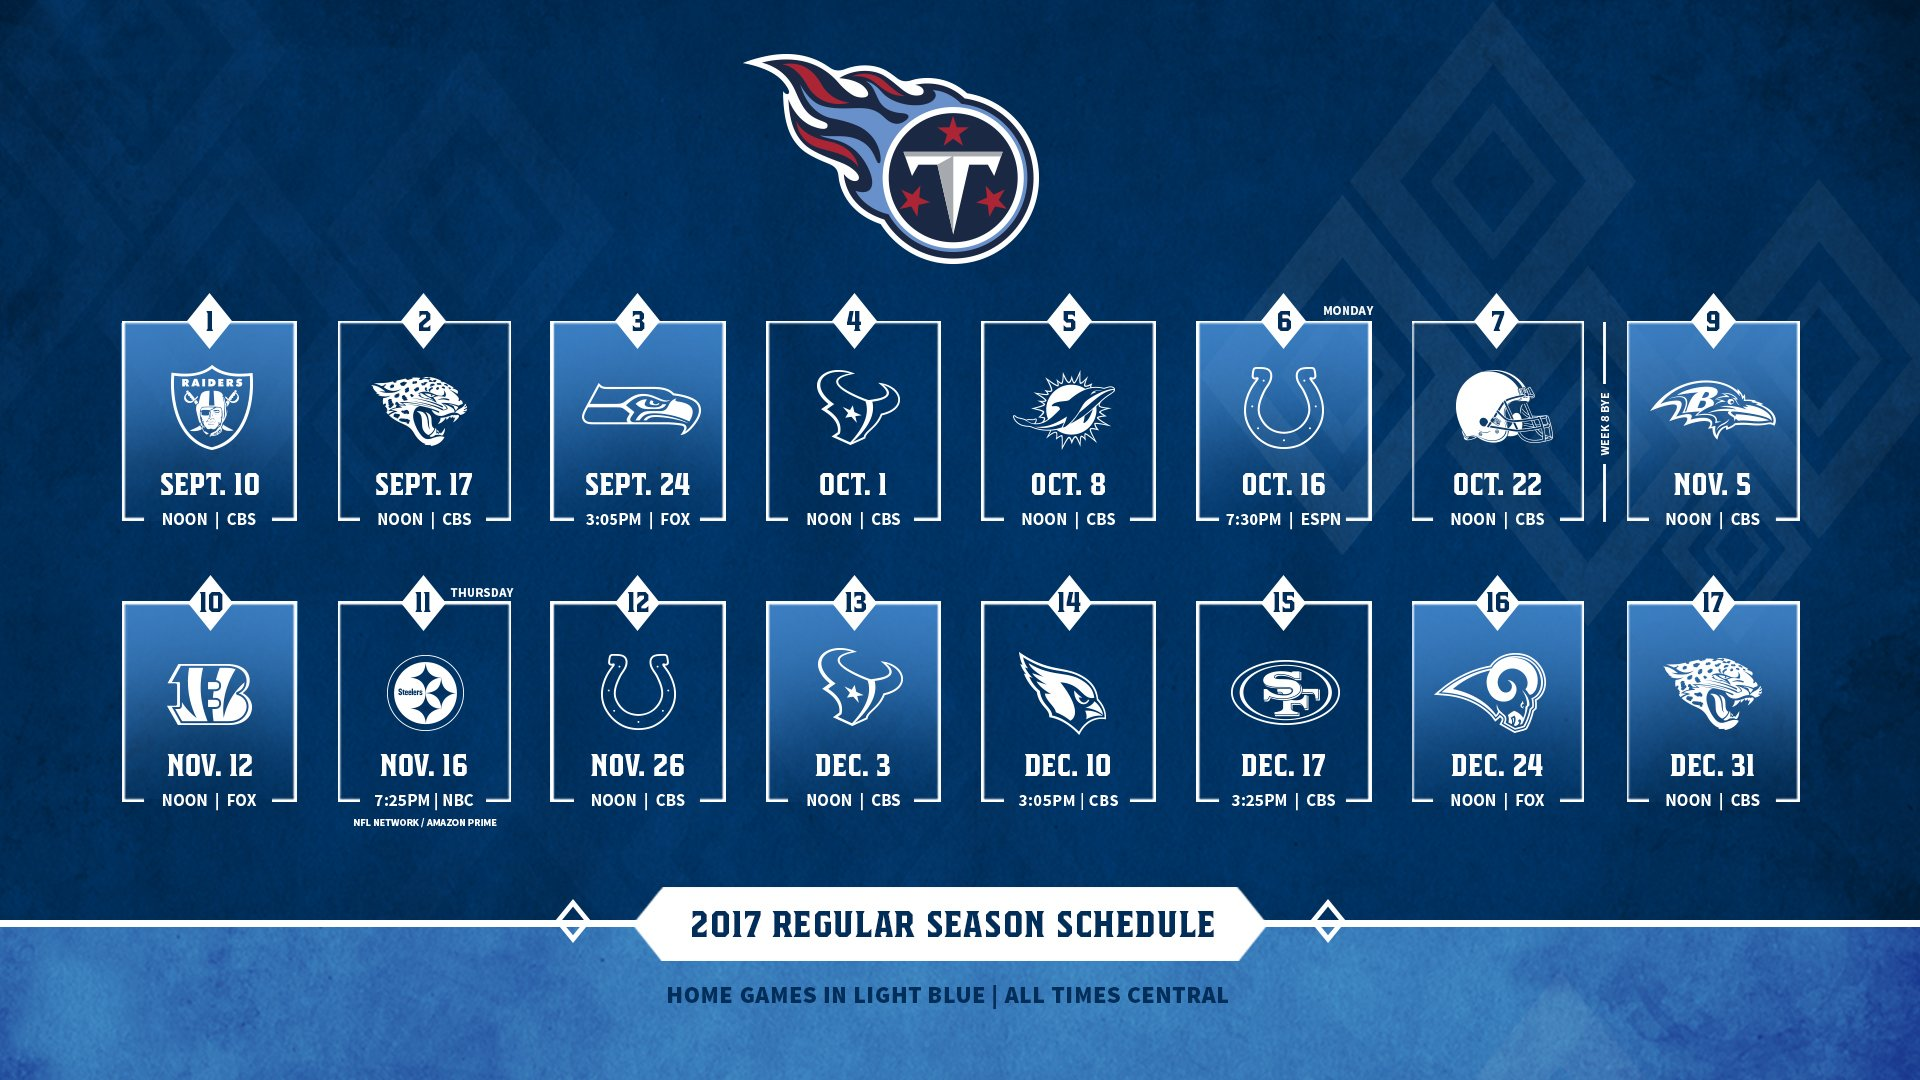 Tennessee Titans On Twitter Whos Ready For Some Football Full 2017 Schedule Tco KYfDuHRlB1